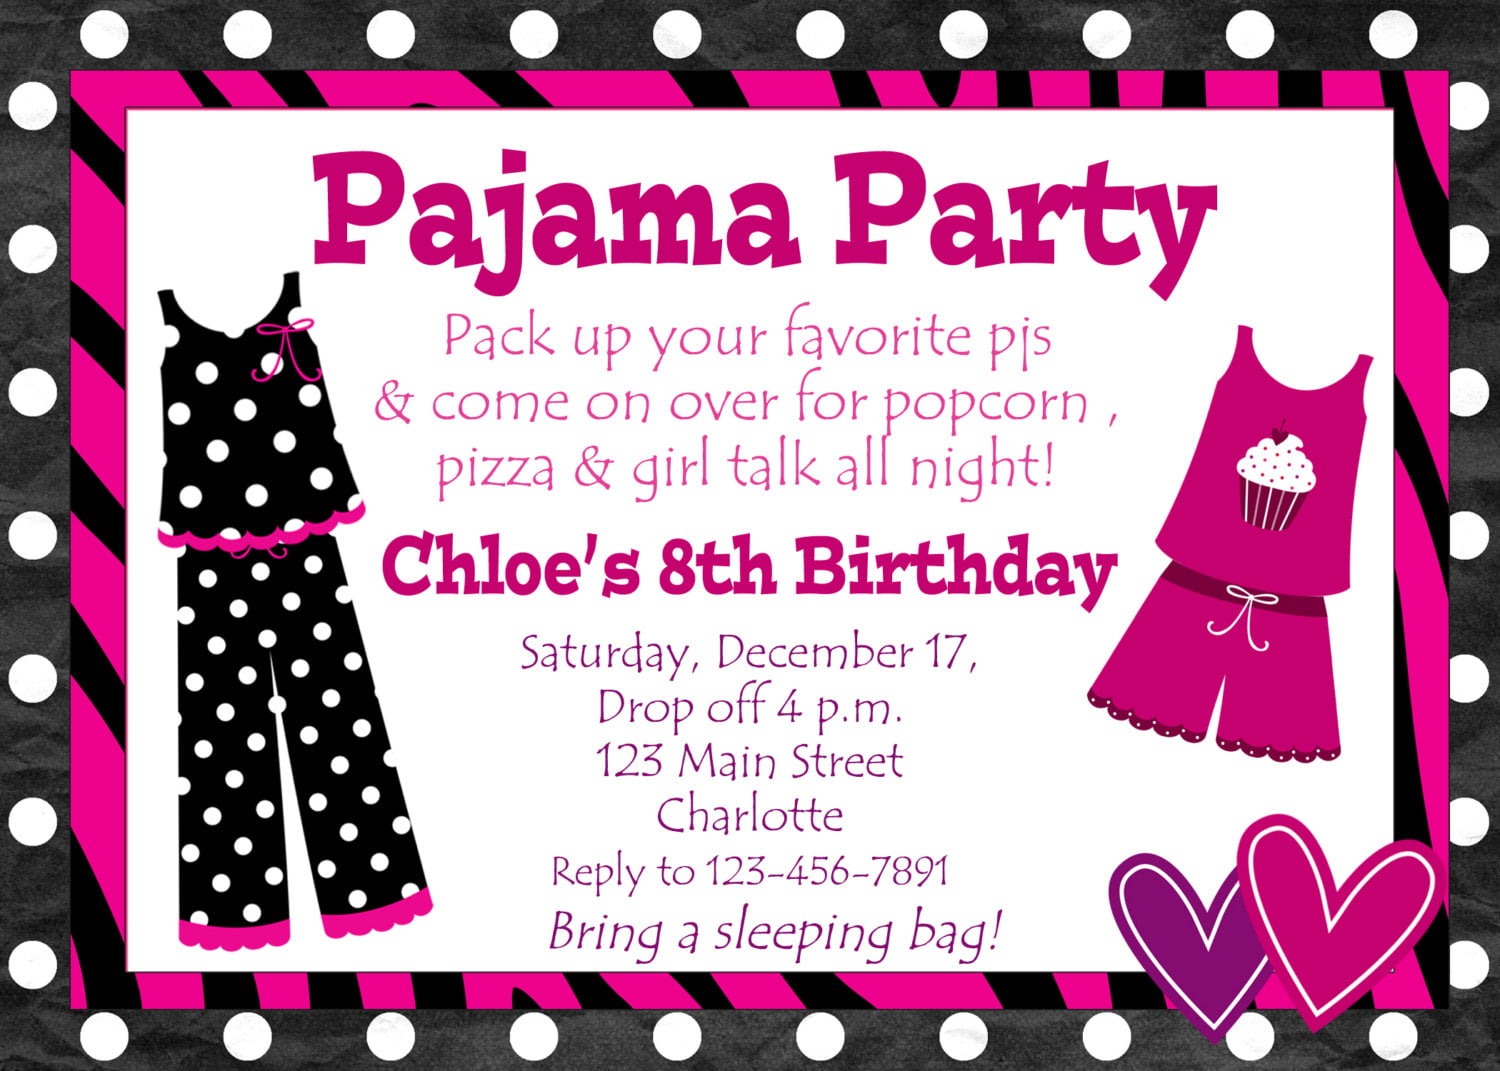 Birthday Party Invitations For Girls | Drevio Invitations Design